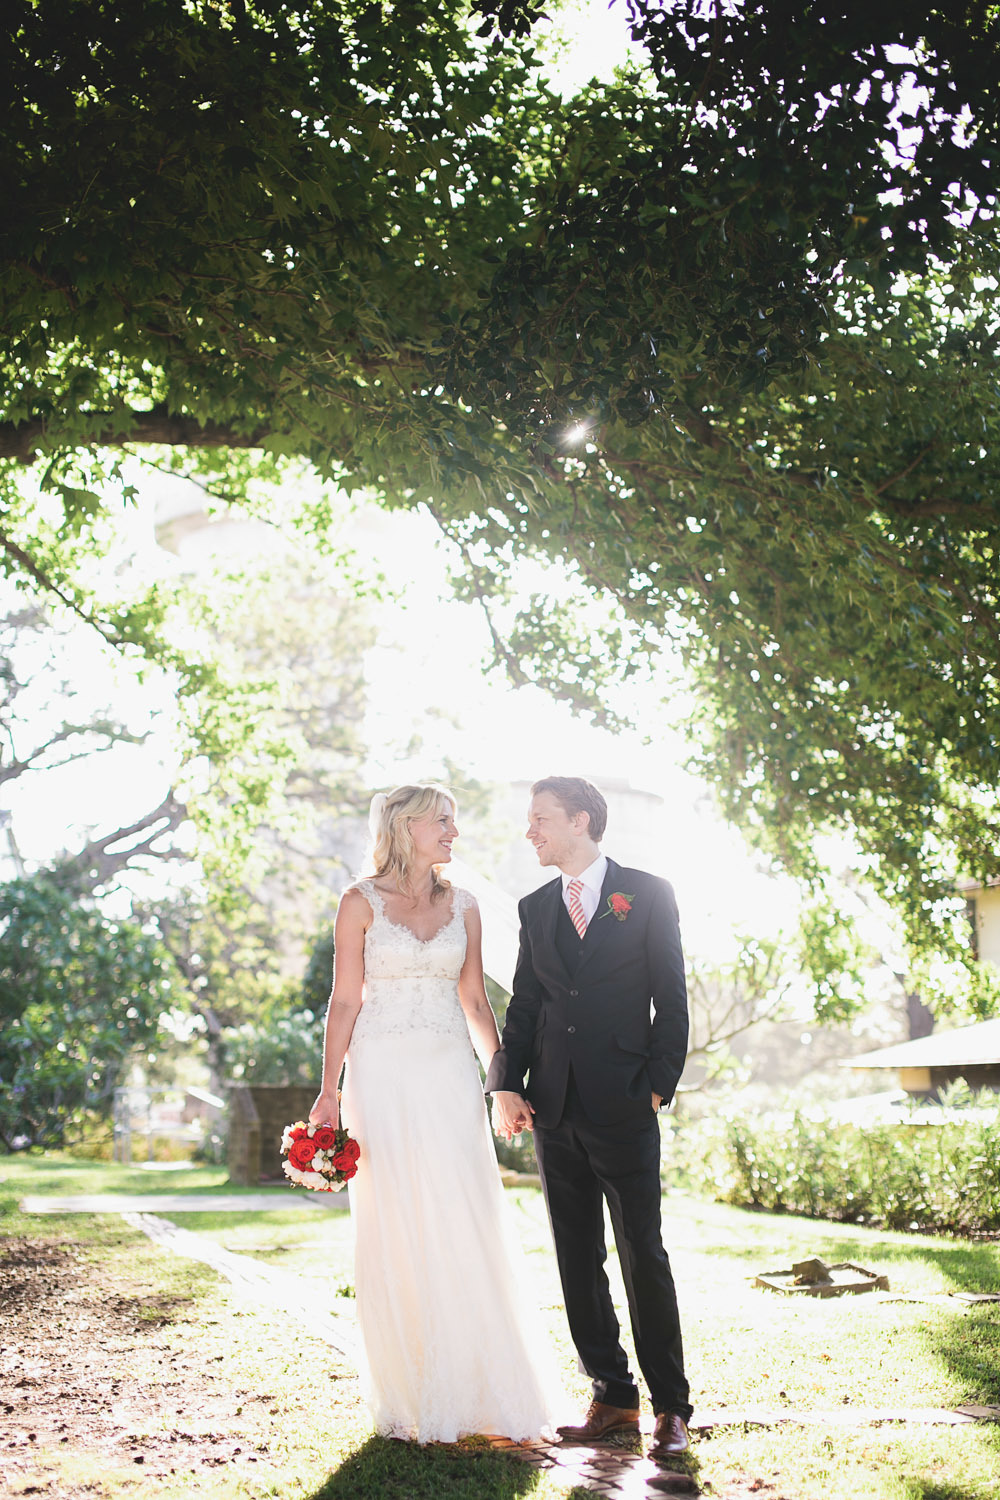 justin_aaron_sydney_cockatoo_island_wedding_photographer-67.jpg